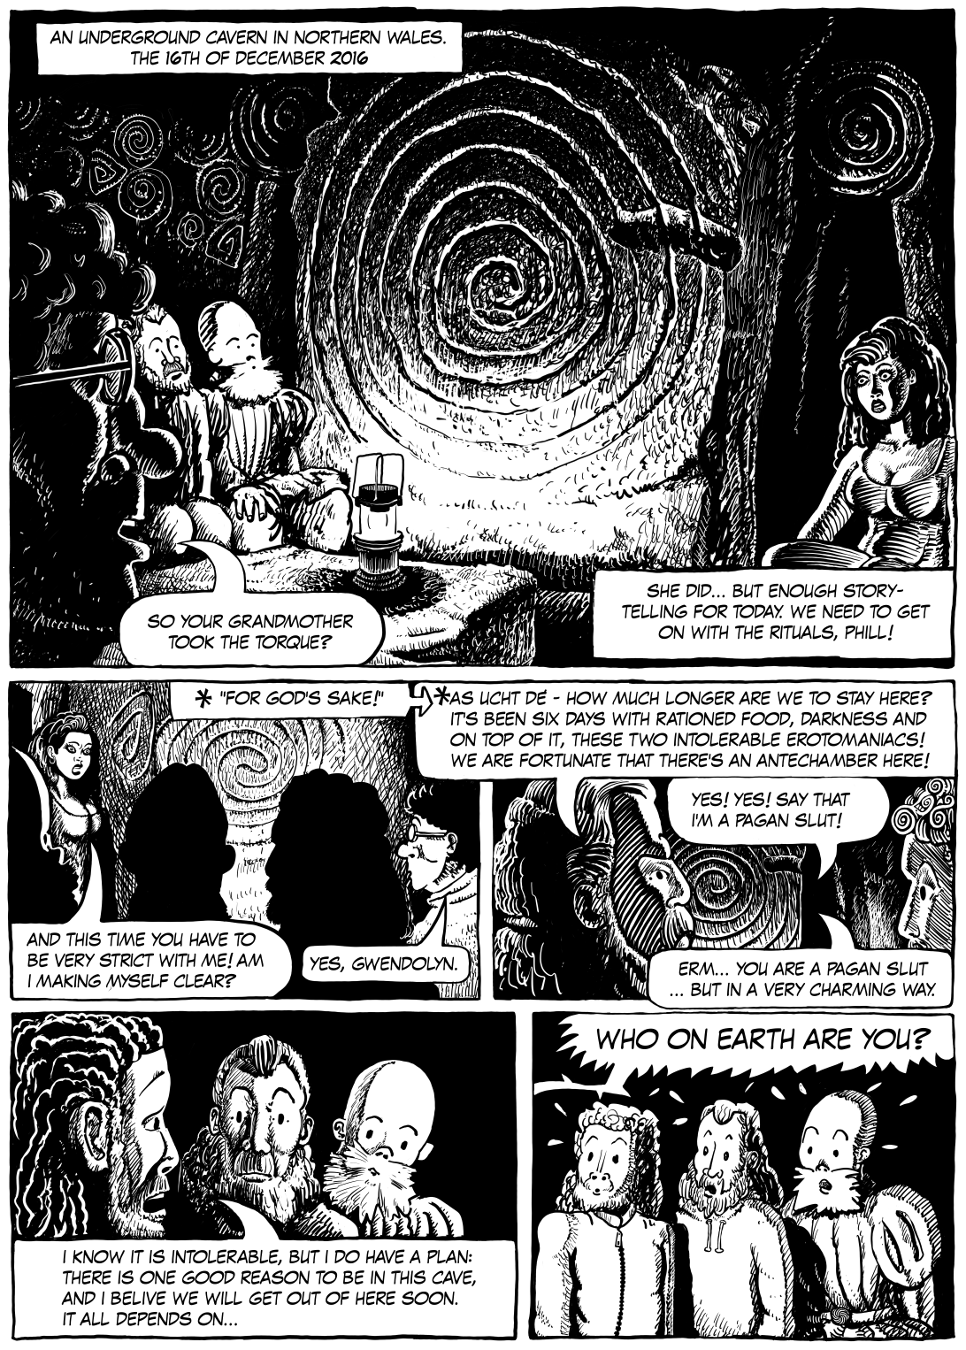 063-The Neolithic Cave